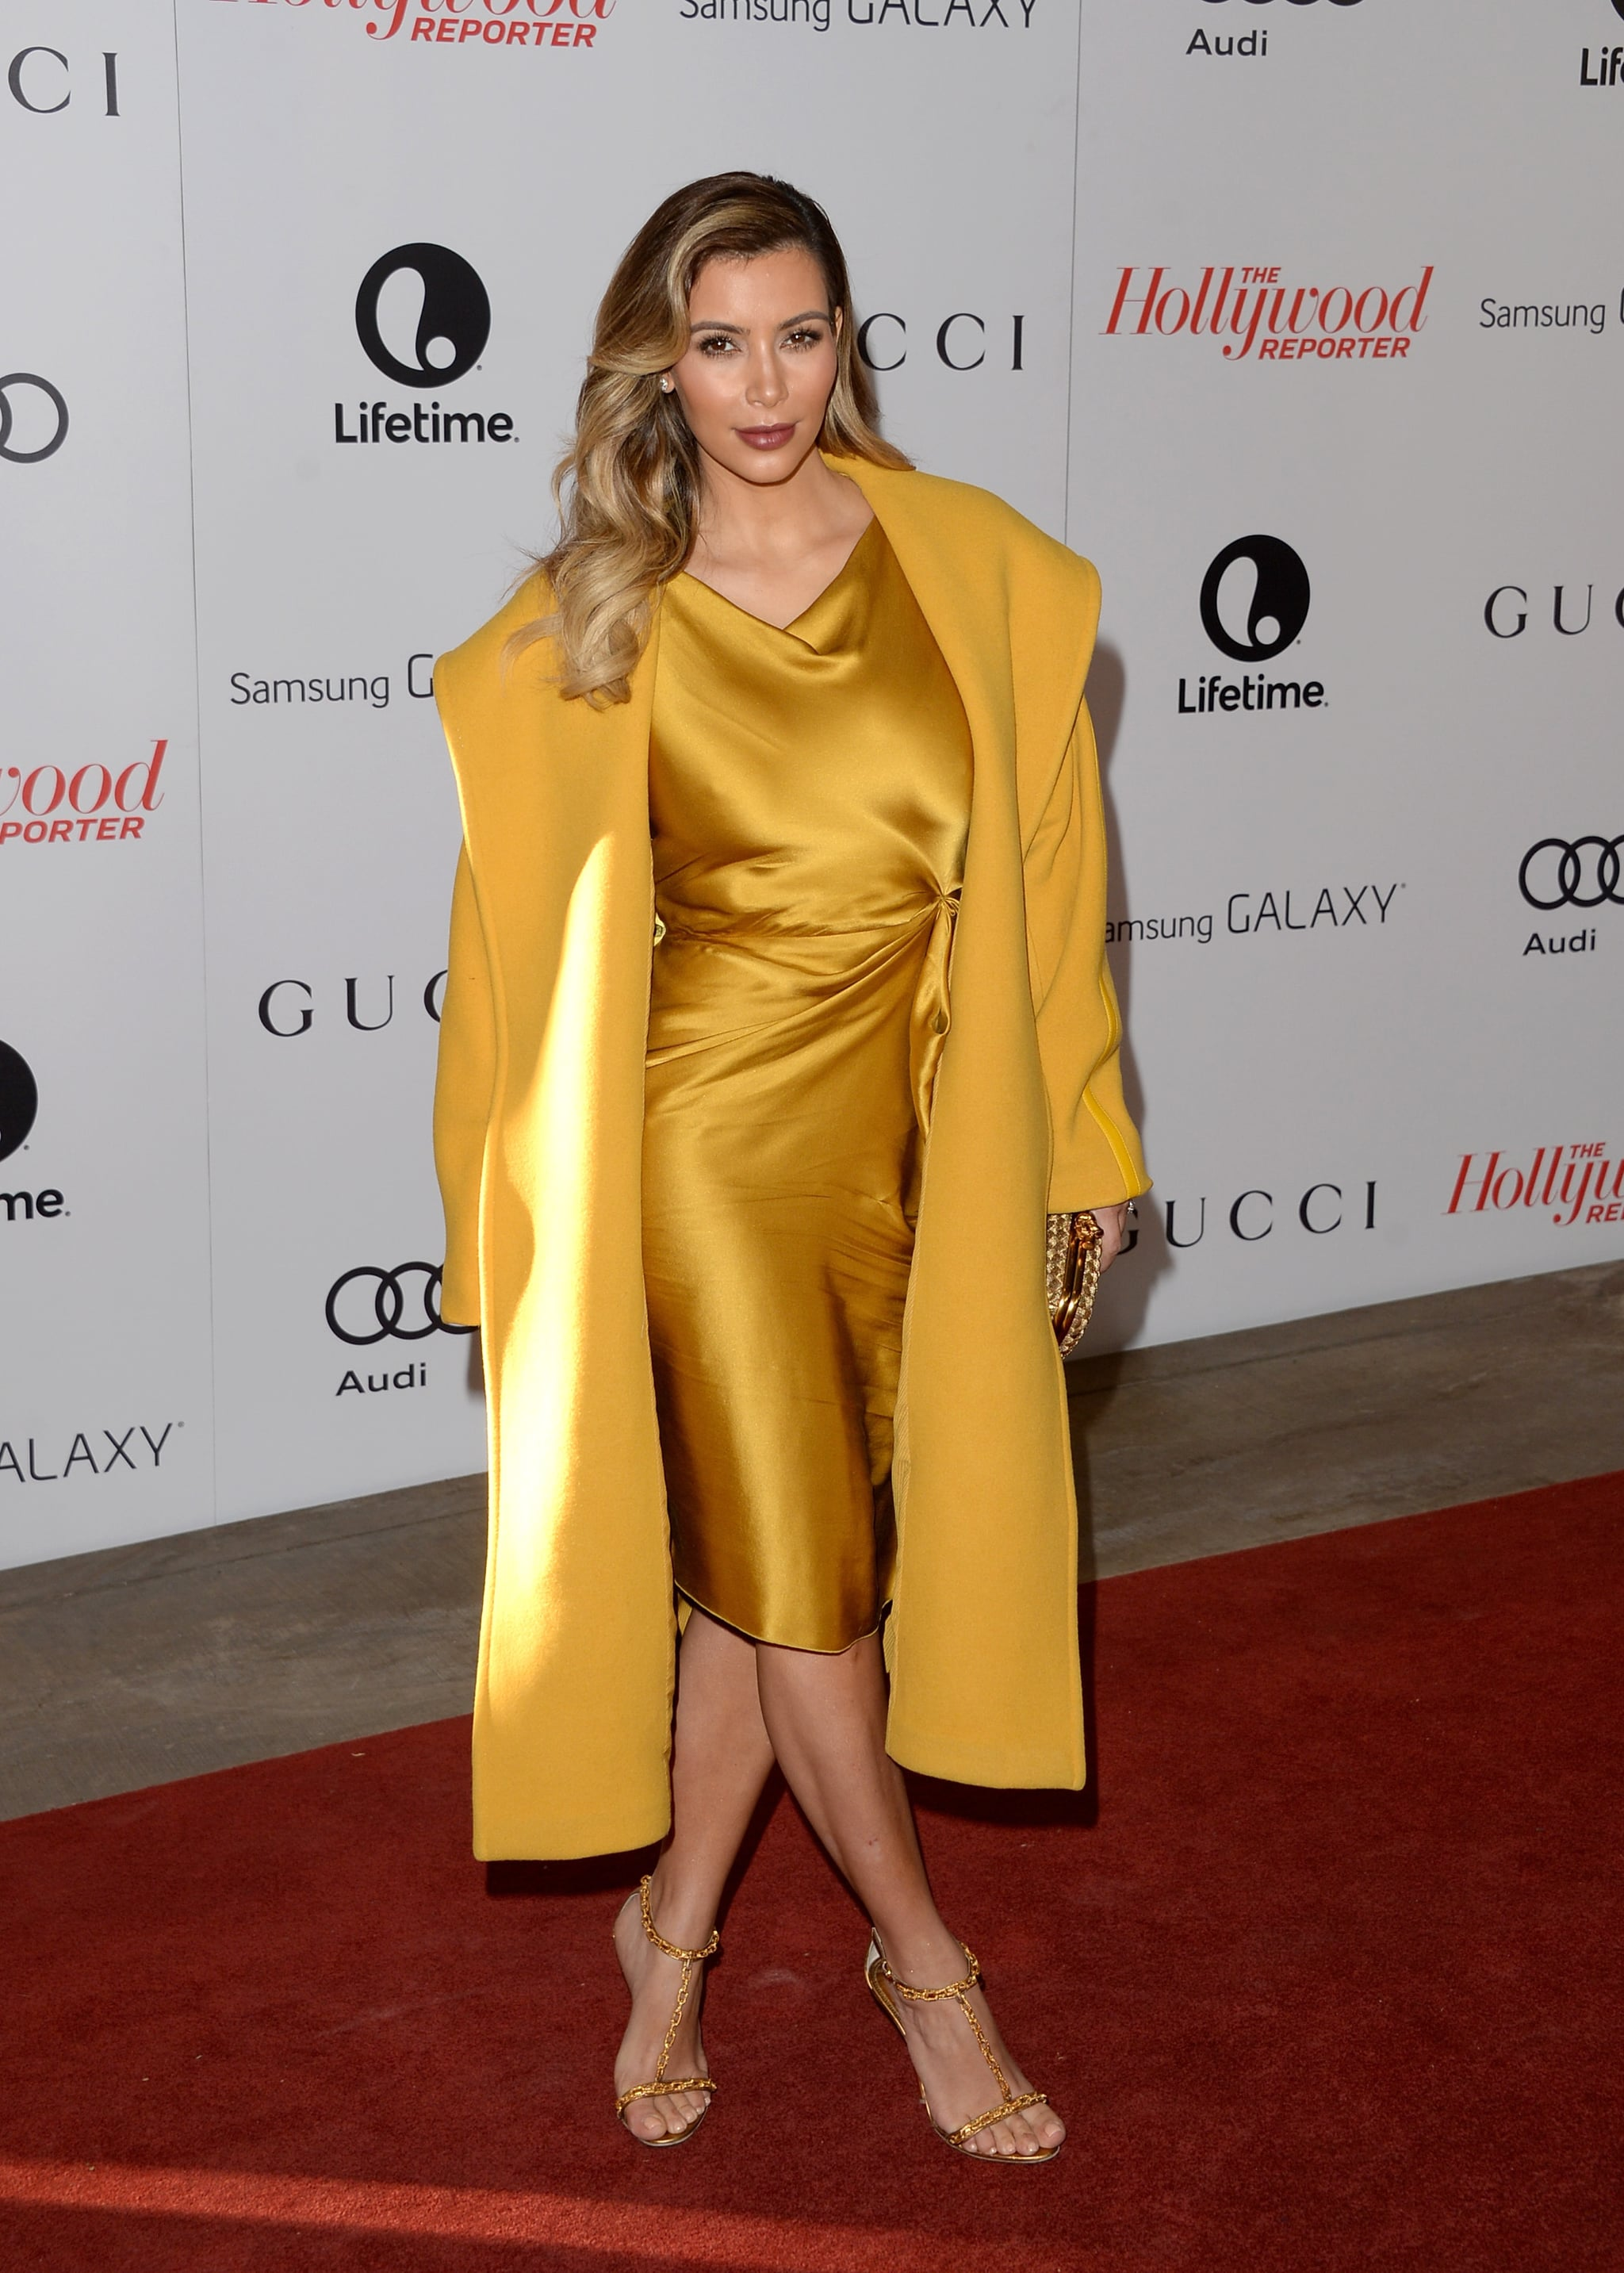 Kim Kardashian hit the red carpet bright and early at The Hollywood Reporter's Women in Entertainment breakfast in Beverly Hills, CA.